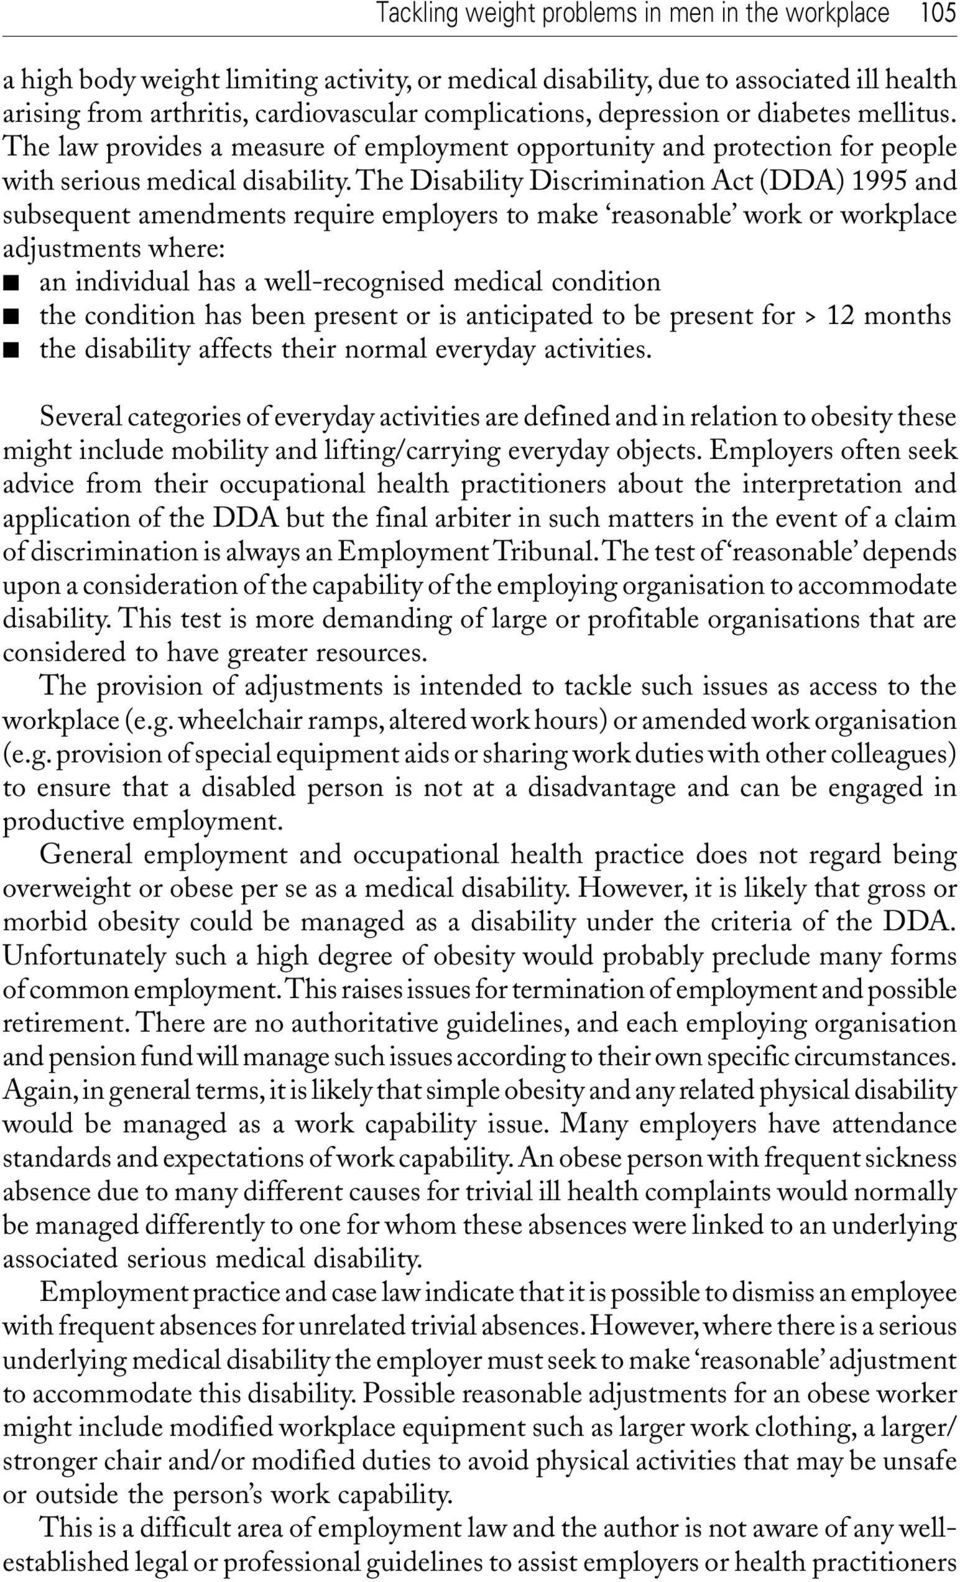 The Disability Discrimination Act (DDA) 1995 and subsequent amendments require employers to make reasonable work or workplace adjustments where: an individual has a well-recognised medical condition